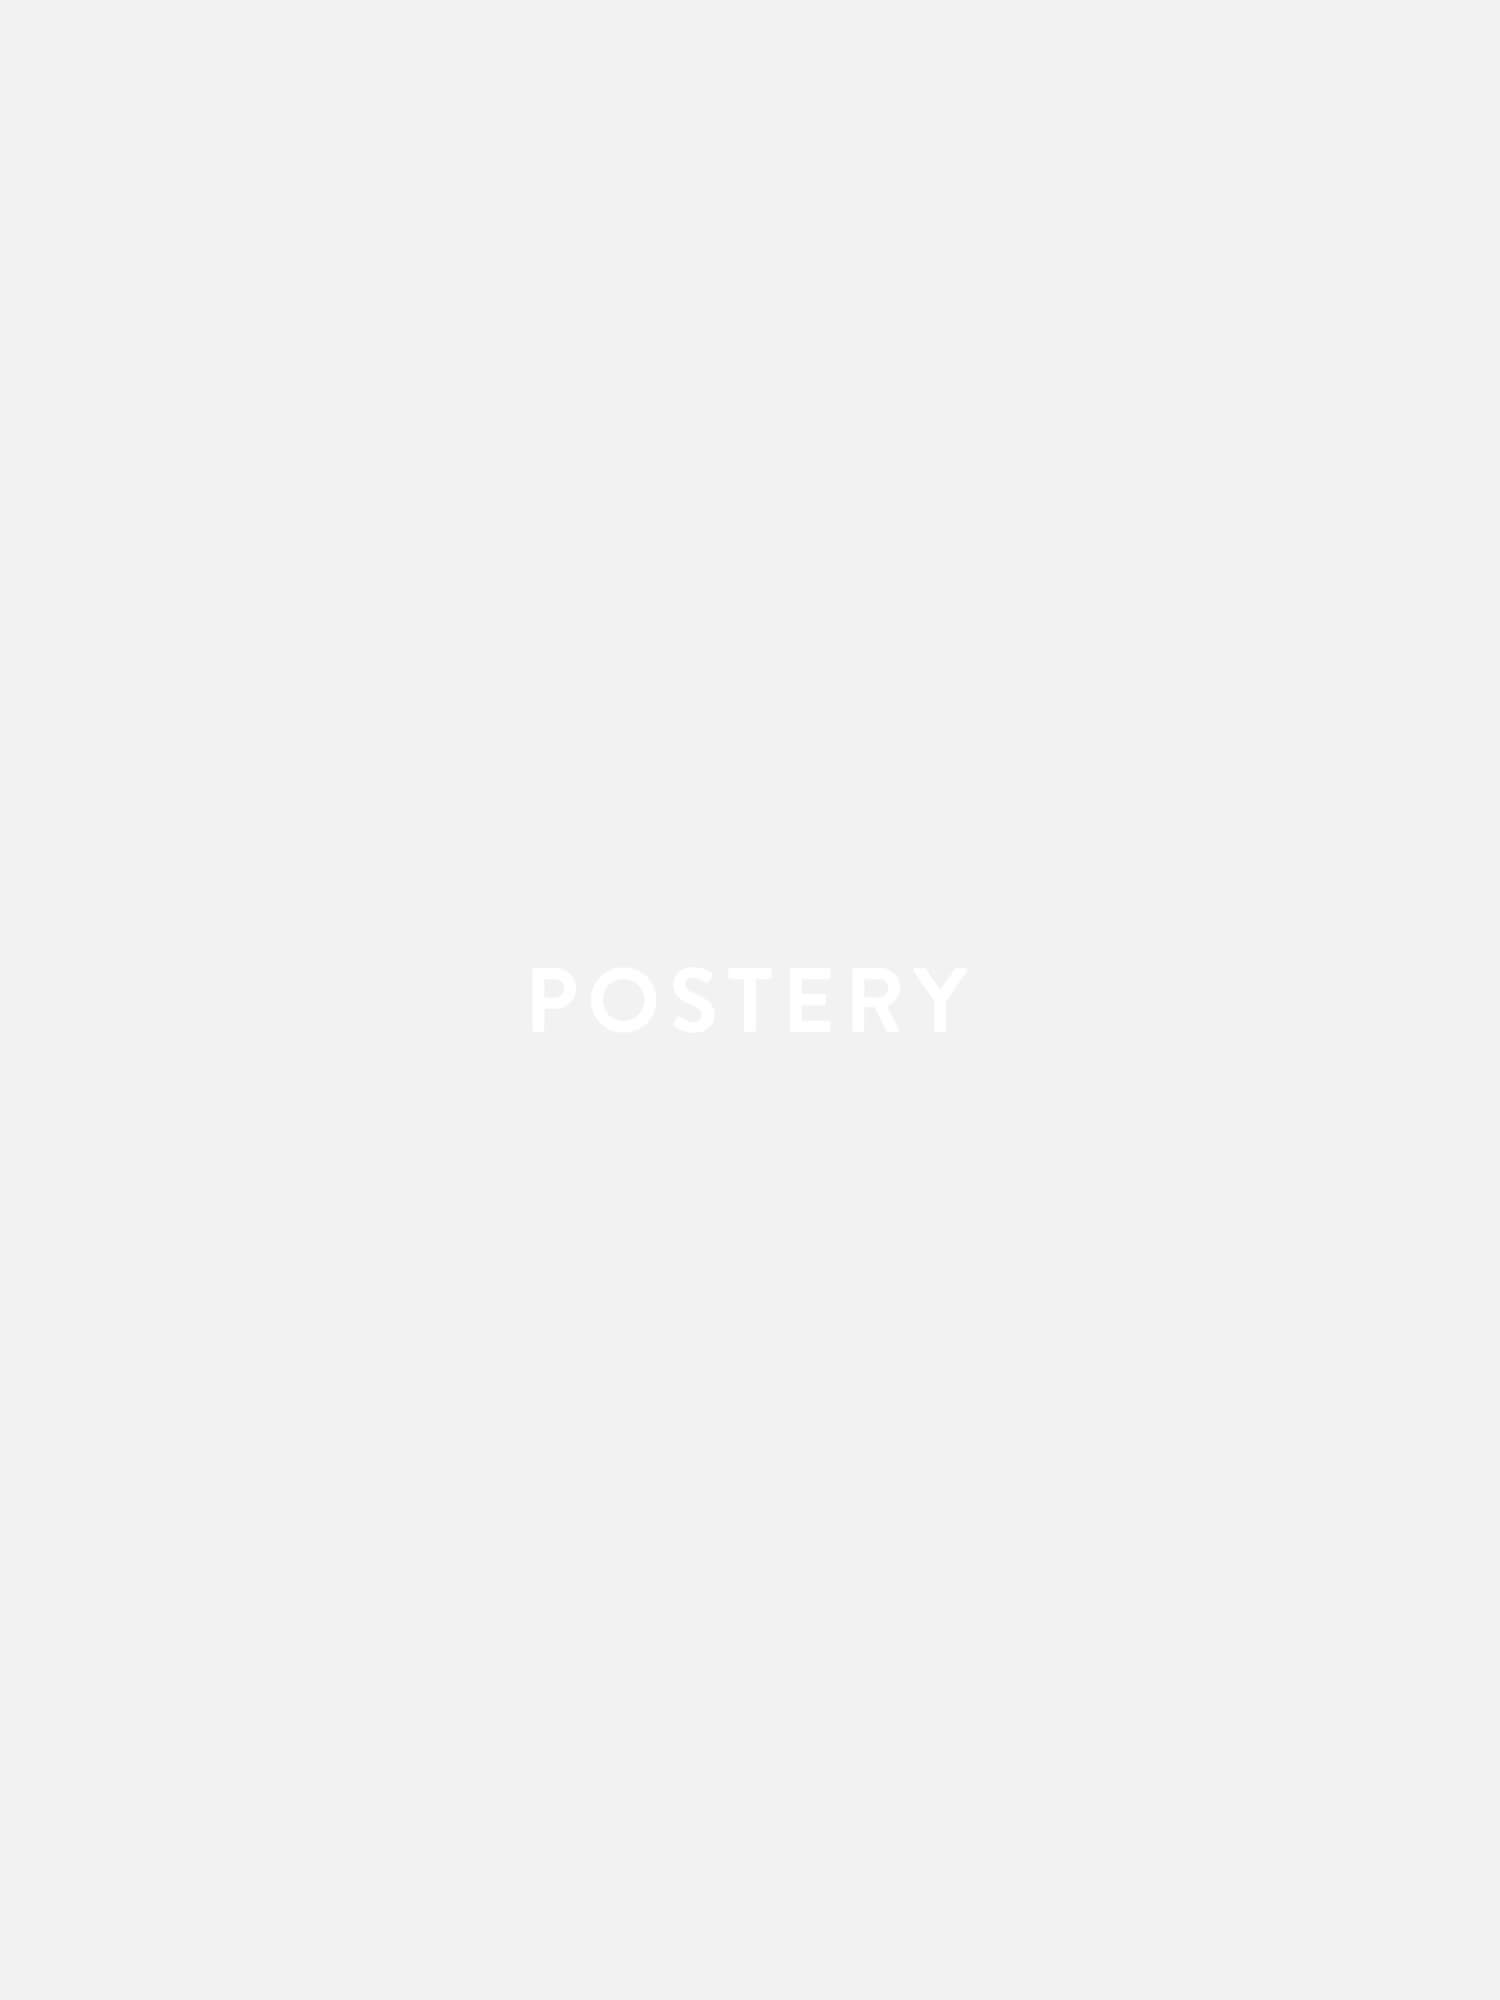 Fresh Peaches Poster